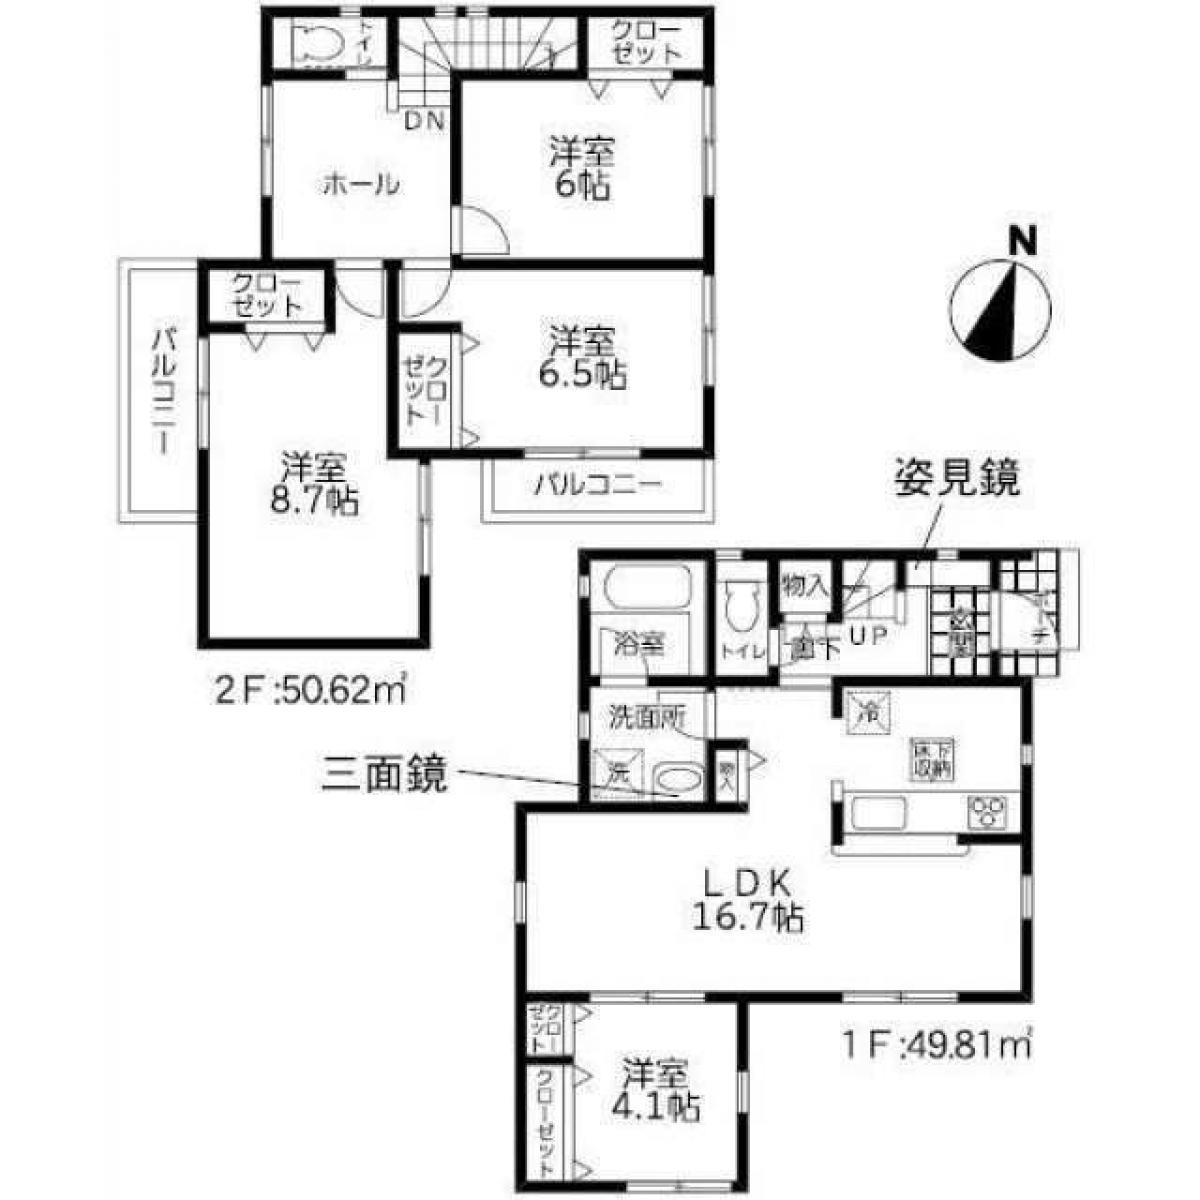 Property listed For Sale in Itoshima Shi, Japan